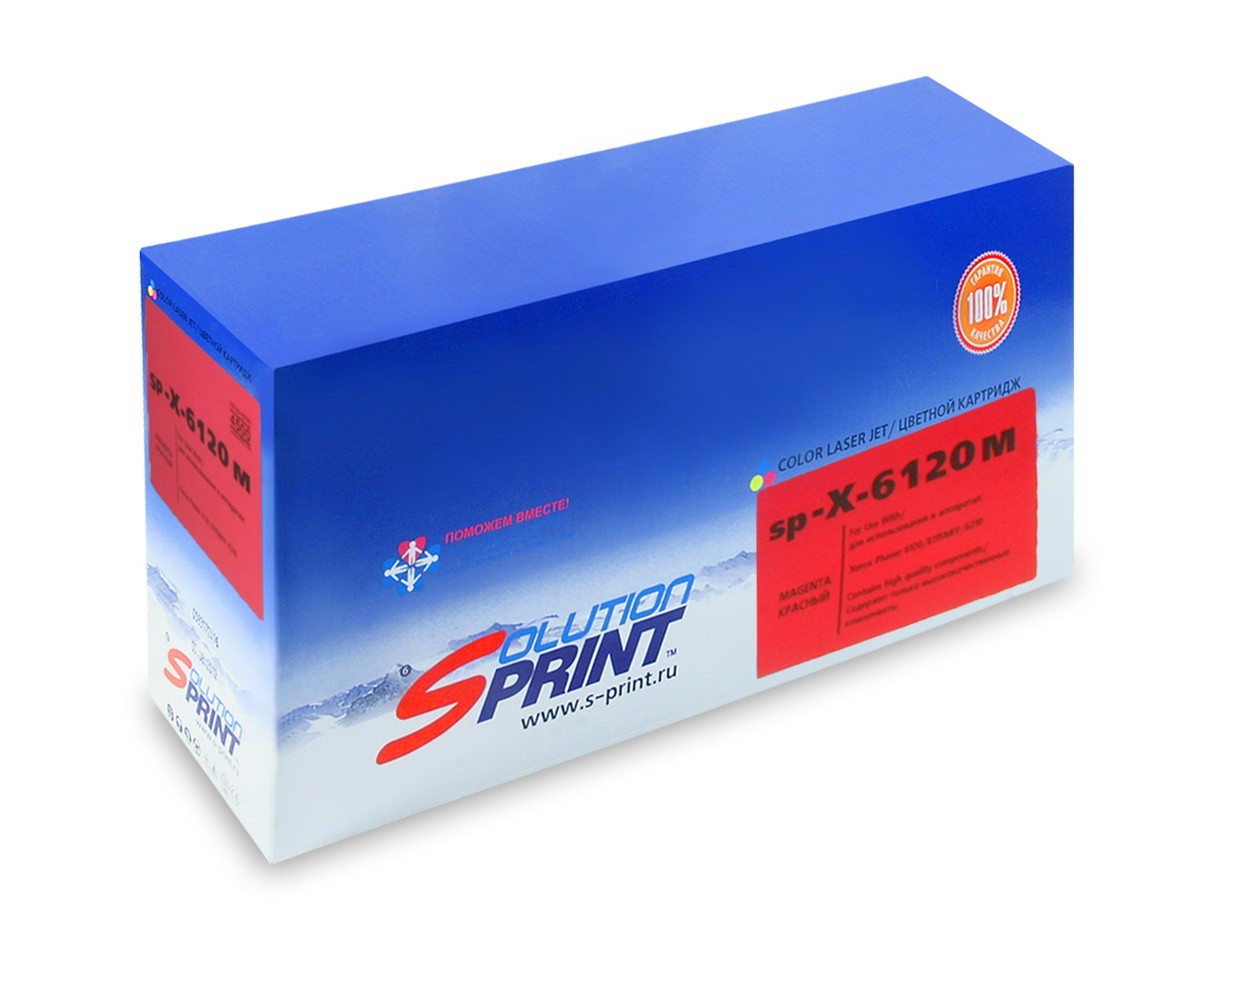 Картридж лазерный SolutionPrint SP-X-6120M (4500 коп.; Xerox Phaser 6115/ 6120; красный)